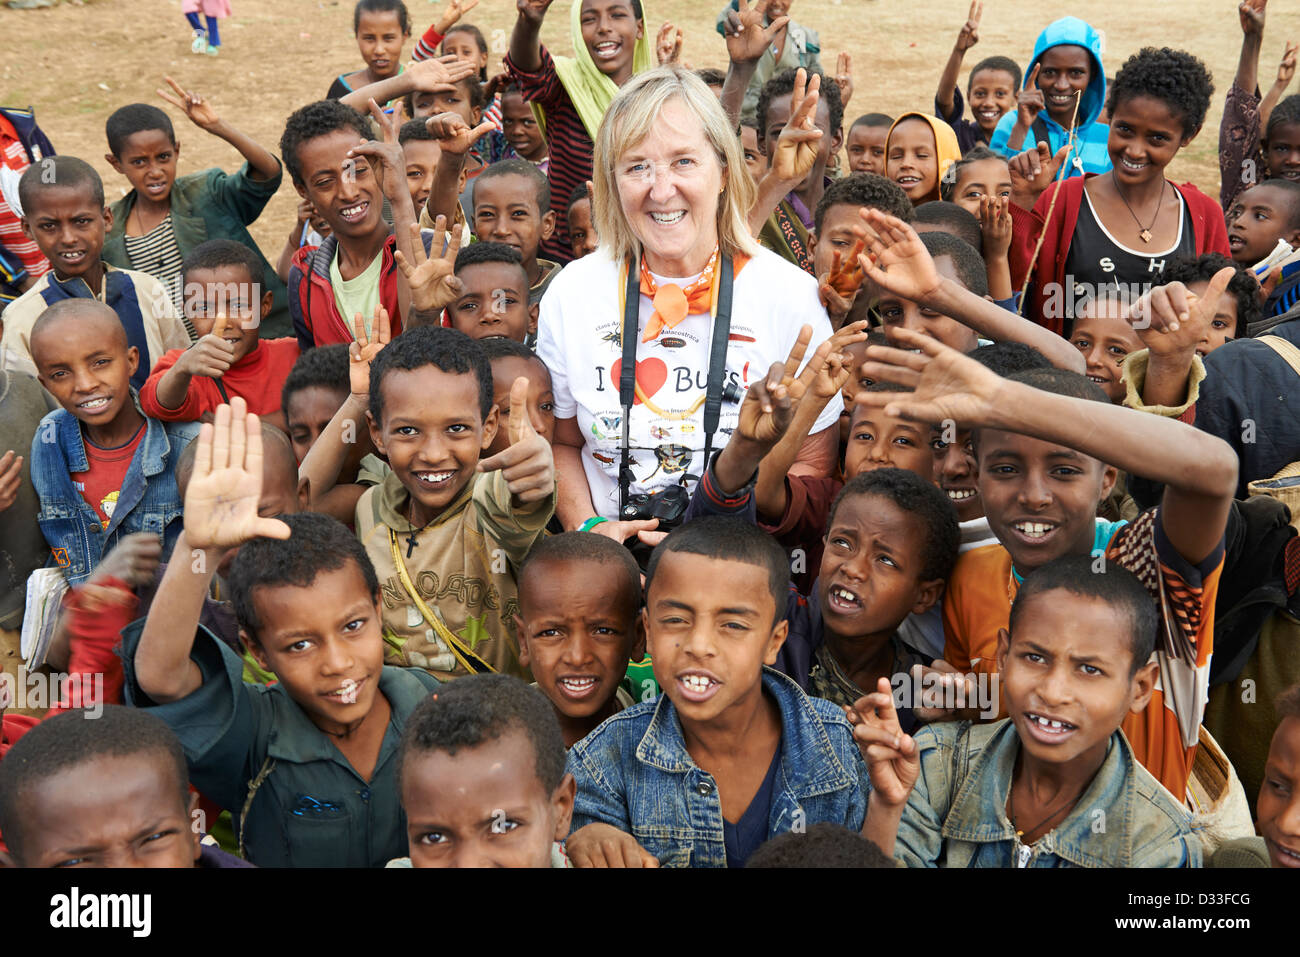 """Margaret D. Lowman or """"Canopy Meg"""" poses with a group of children in Bahir Dar Stock Photo"""